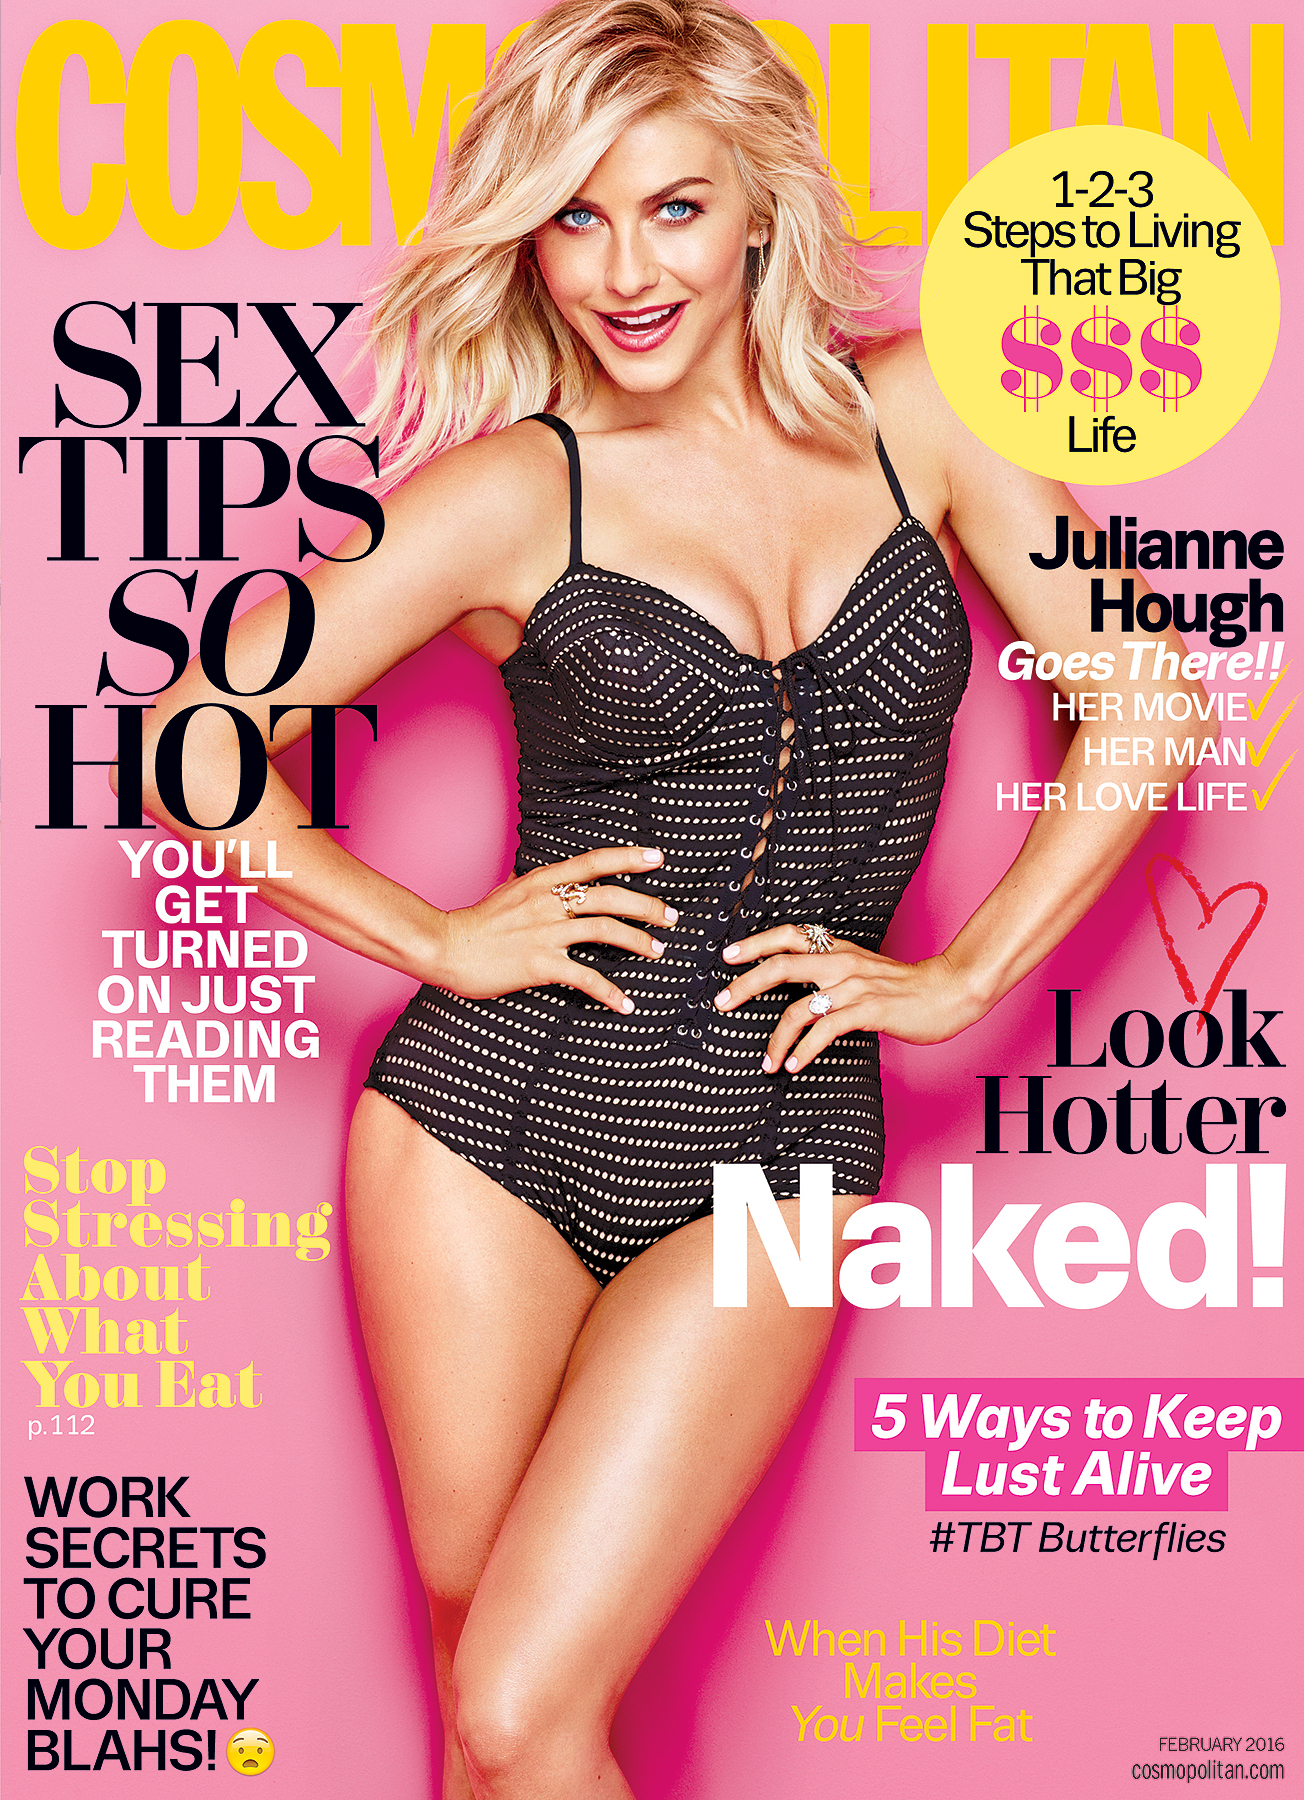 Julianne Hough on the cover of Cosmopolitan